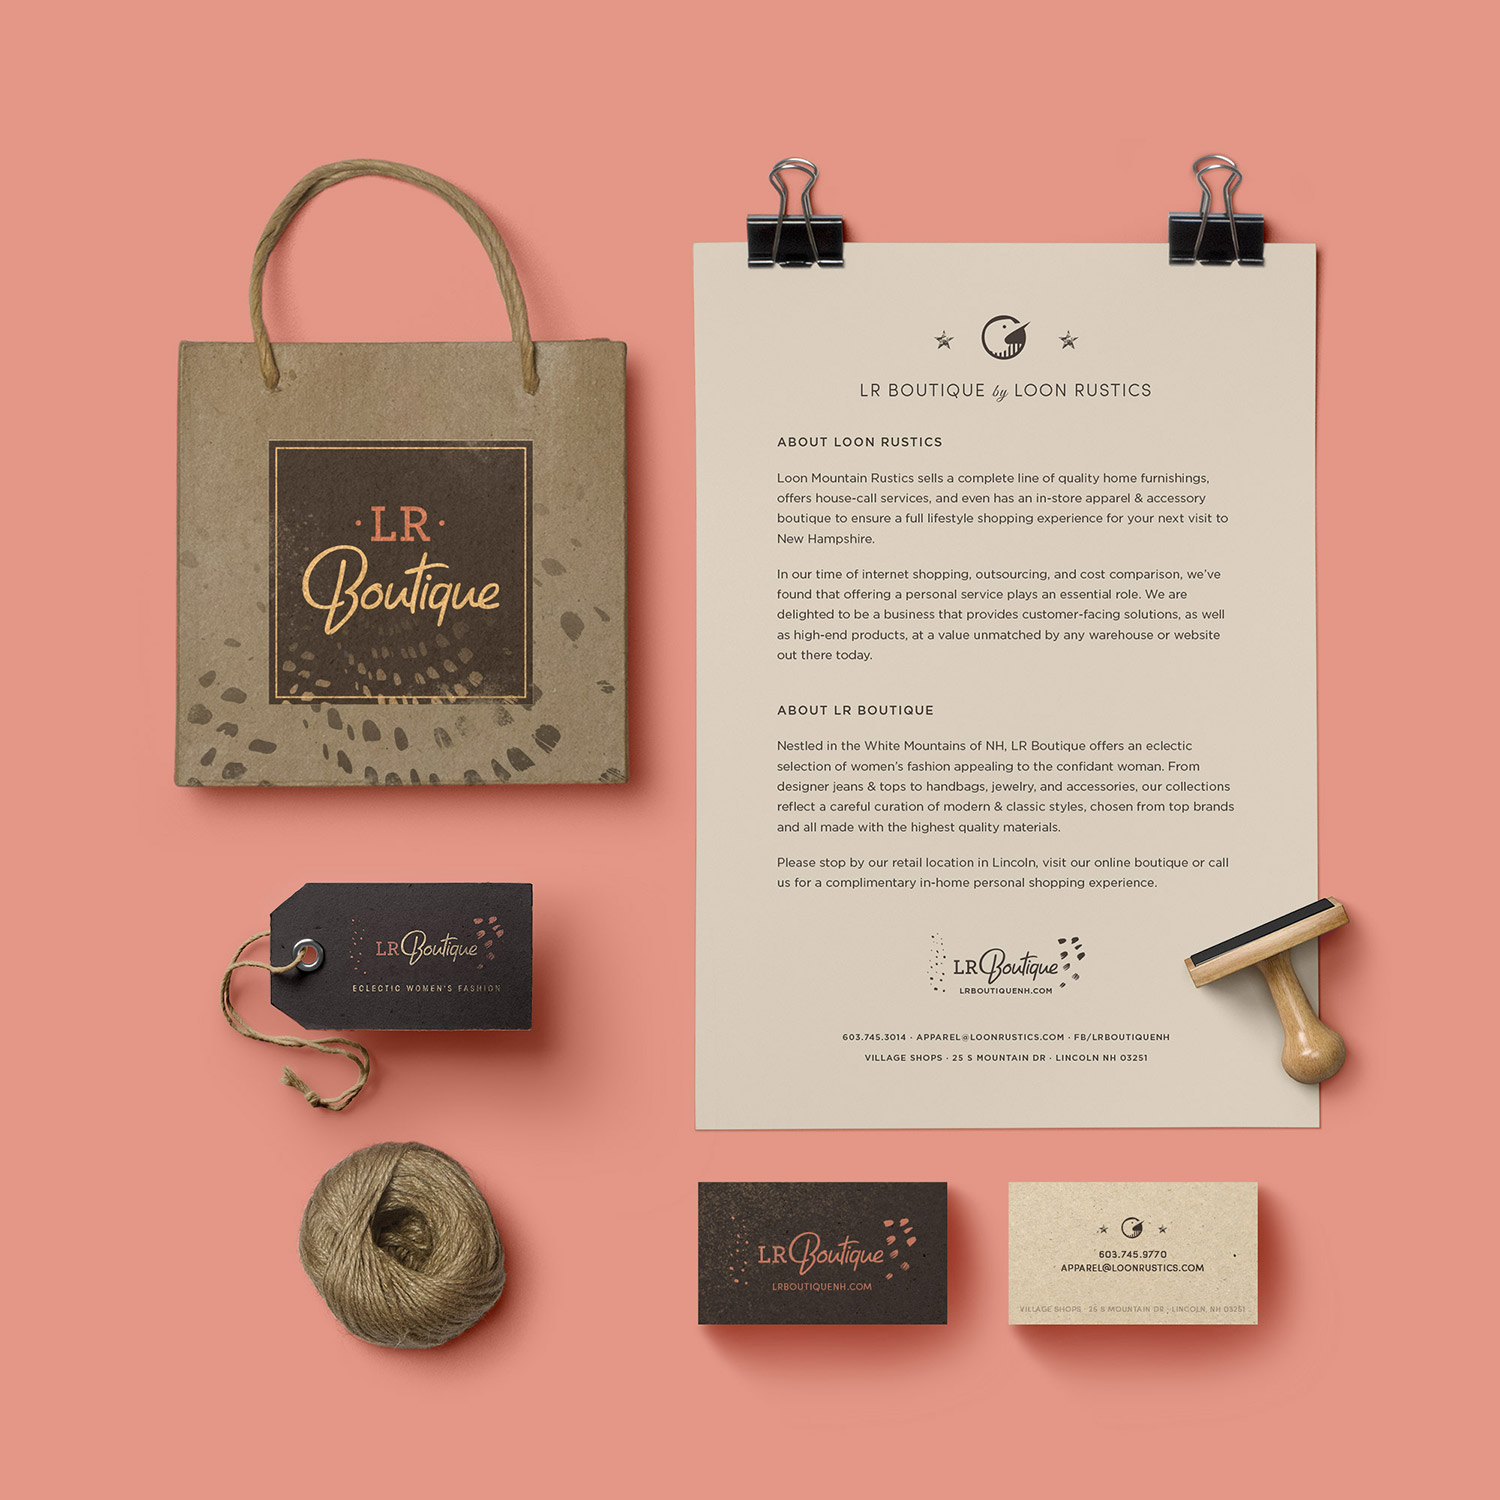 LR Boutique branded stationery